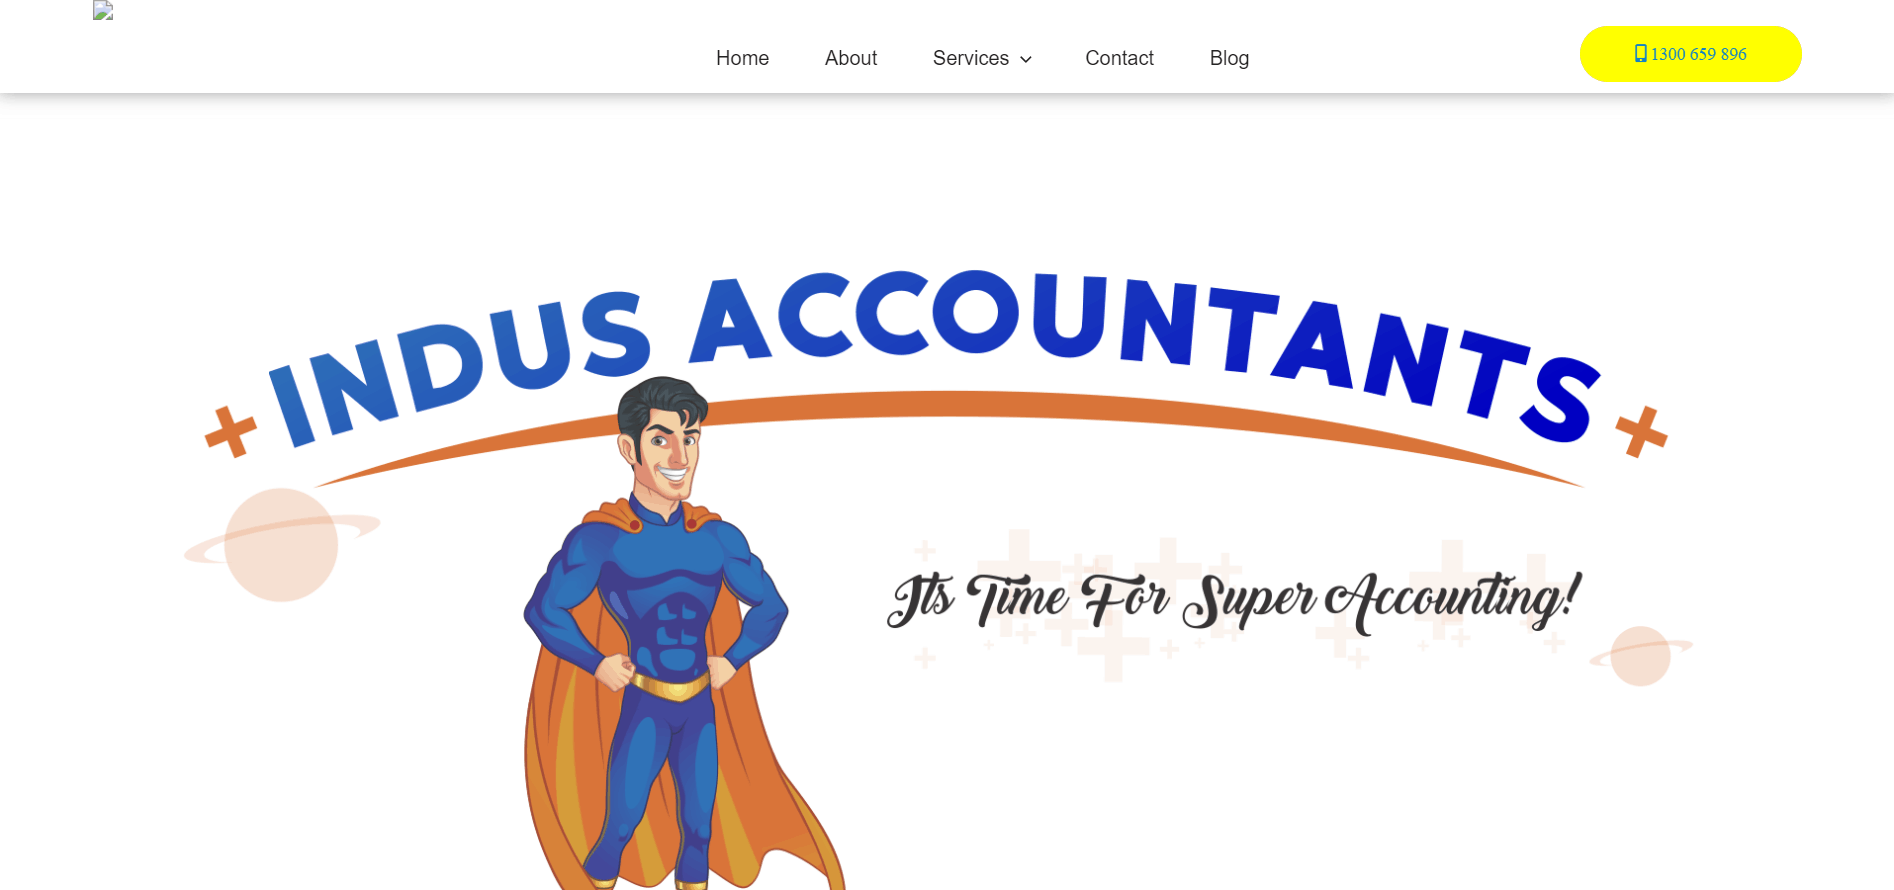 Indus Accountants